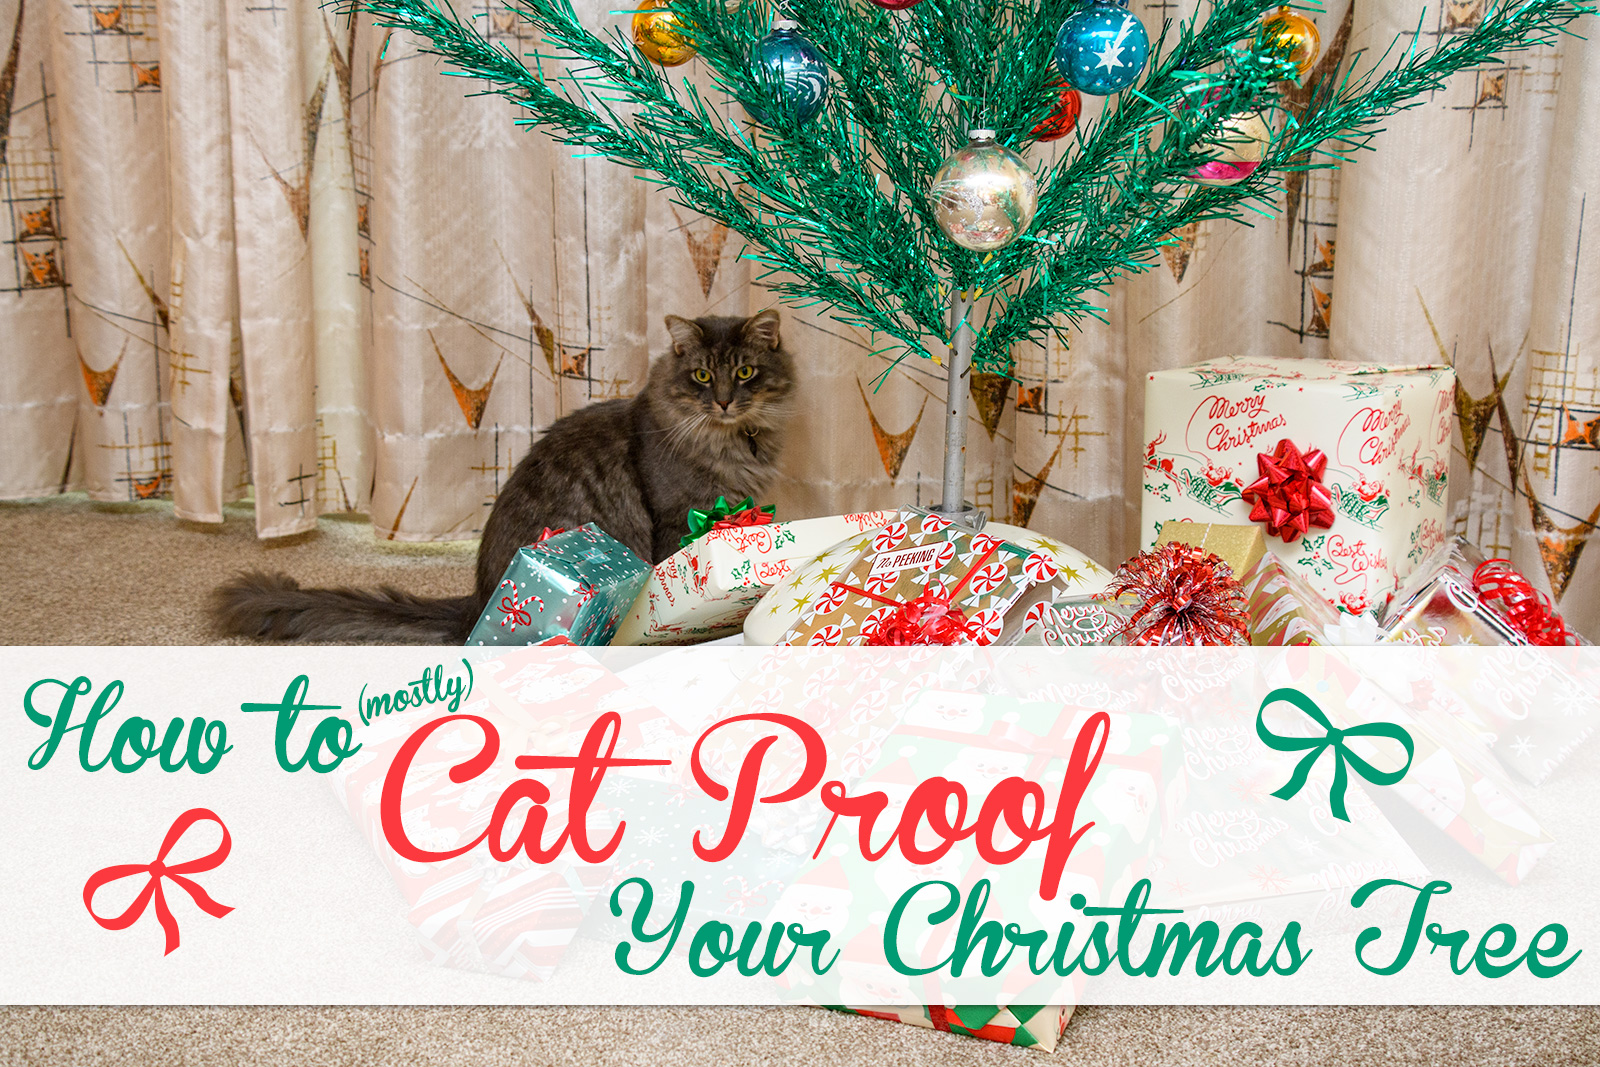 How To Cat Proof Your Christmas Tree.How To Mostly Cat Proof Your Christmas Tree Atomic Redhead